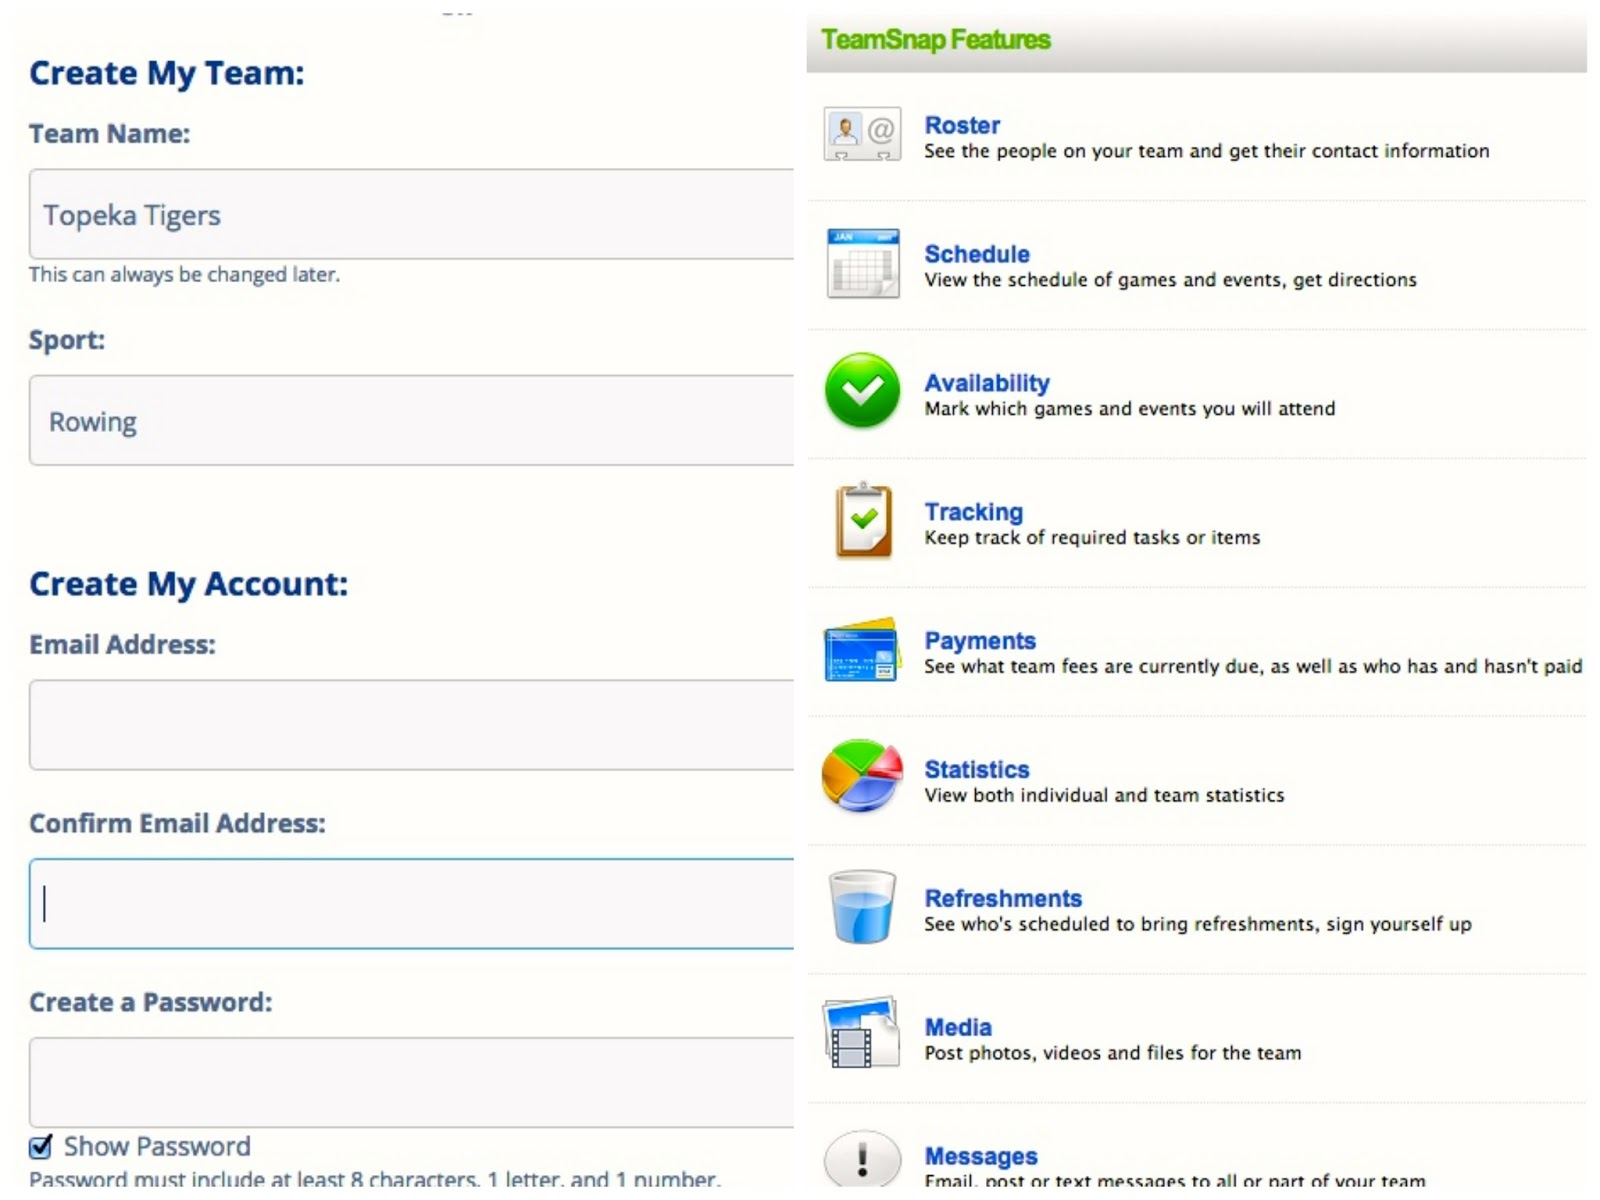 Organizing Your Team Is A Snap with TeamSnap